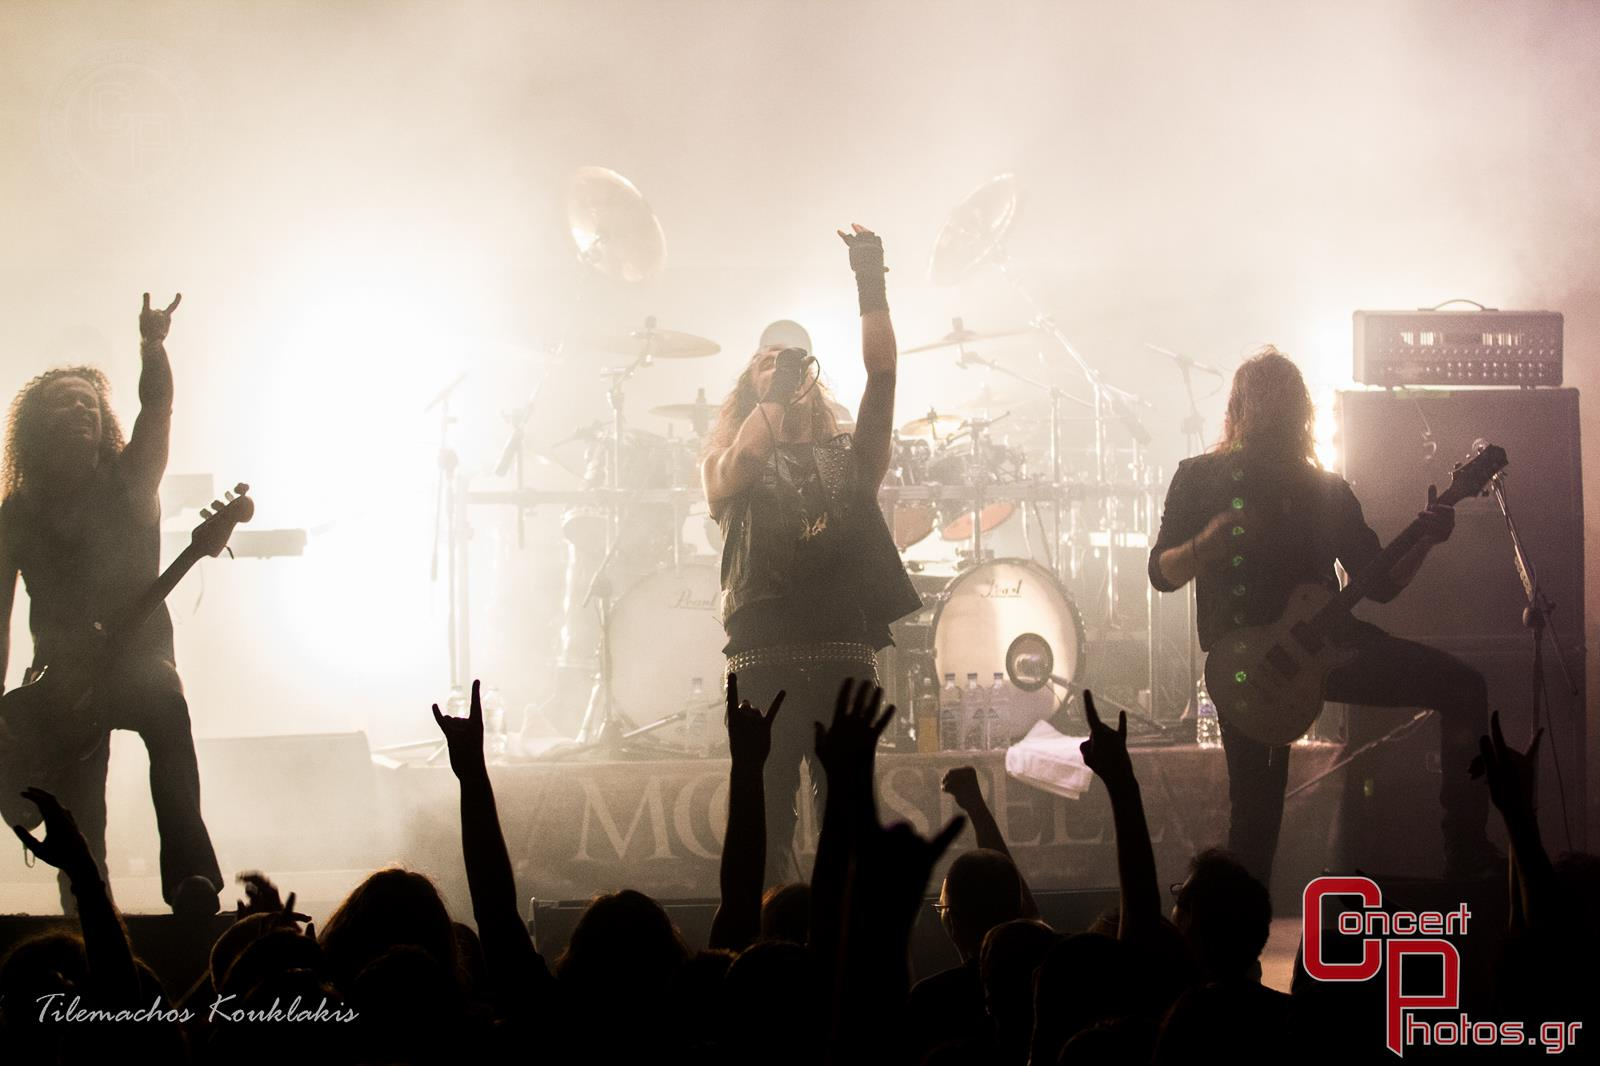 Moonspell-Moonspell photographer:  - IMG_6201